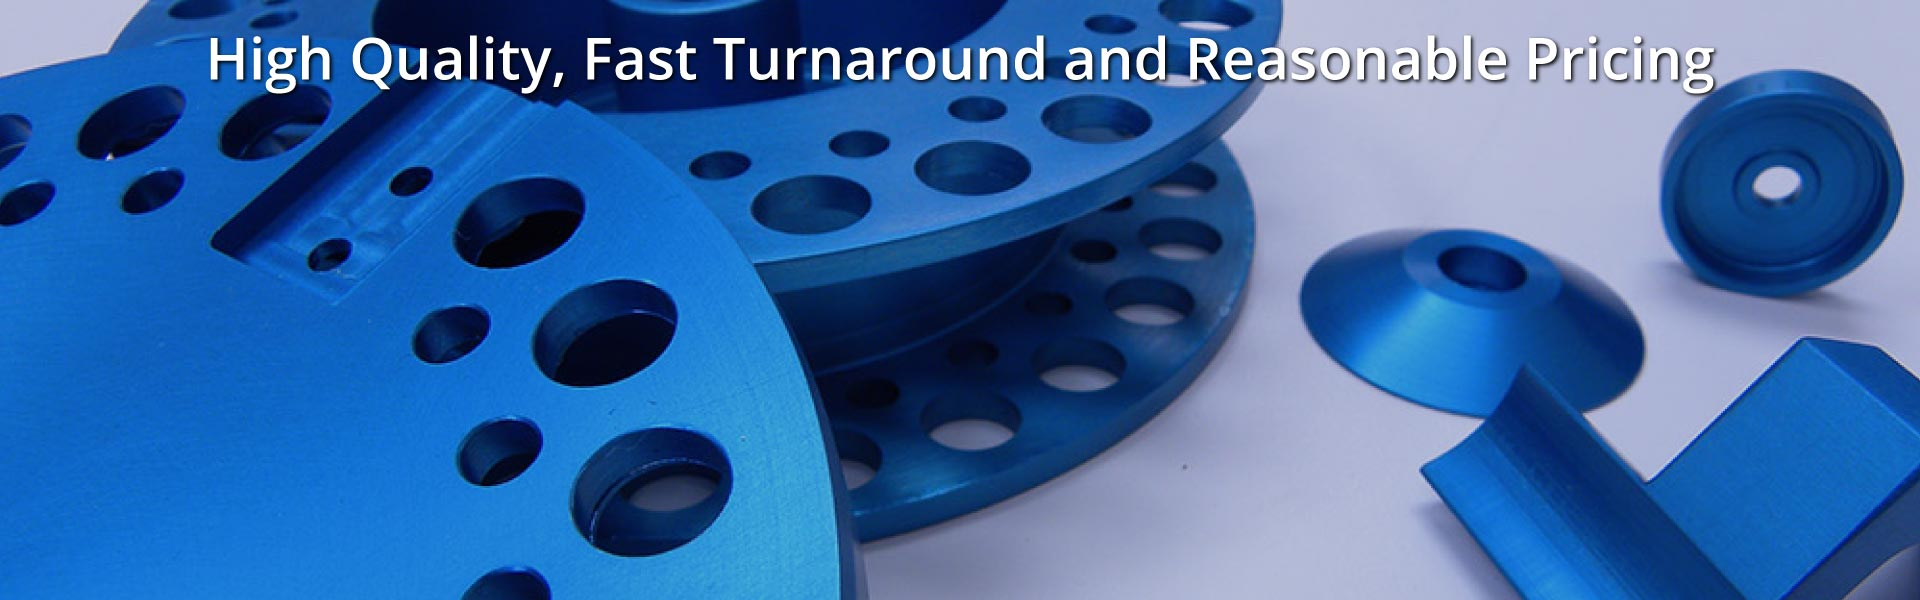 High Quality, Fast Turnaround and Reasonable Pricing | Blue Anodizing on Aluminum